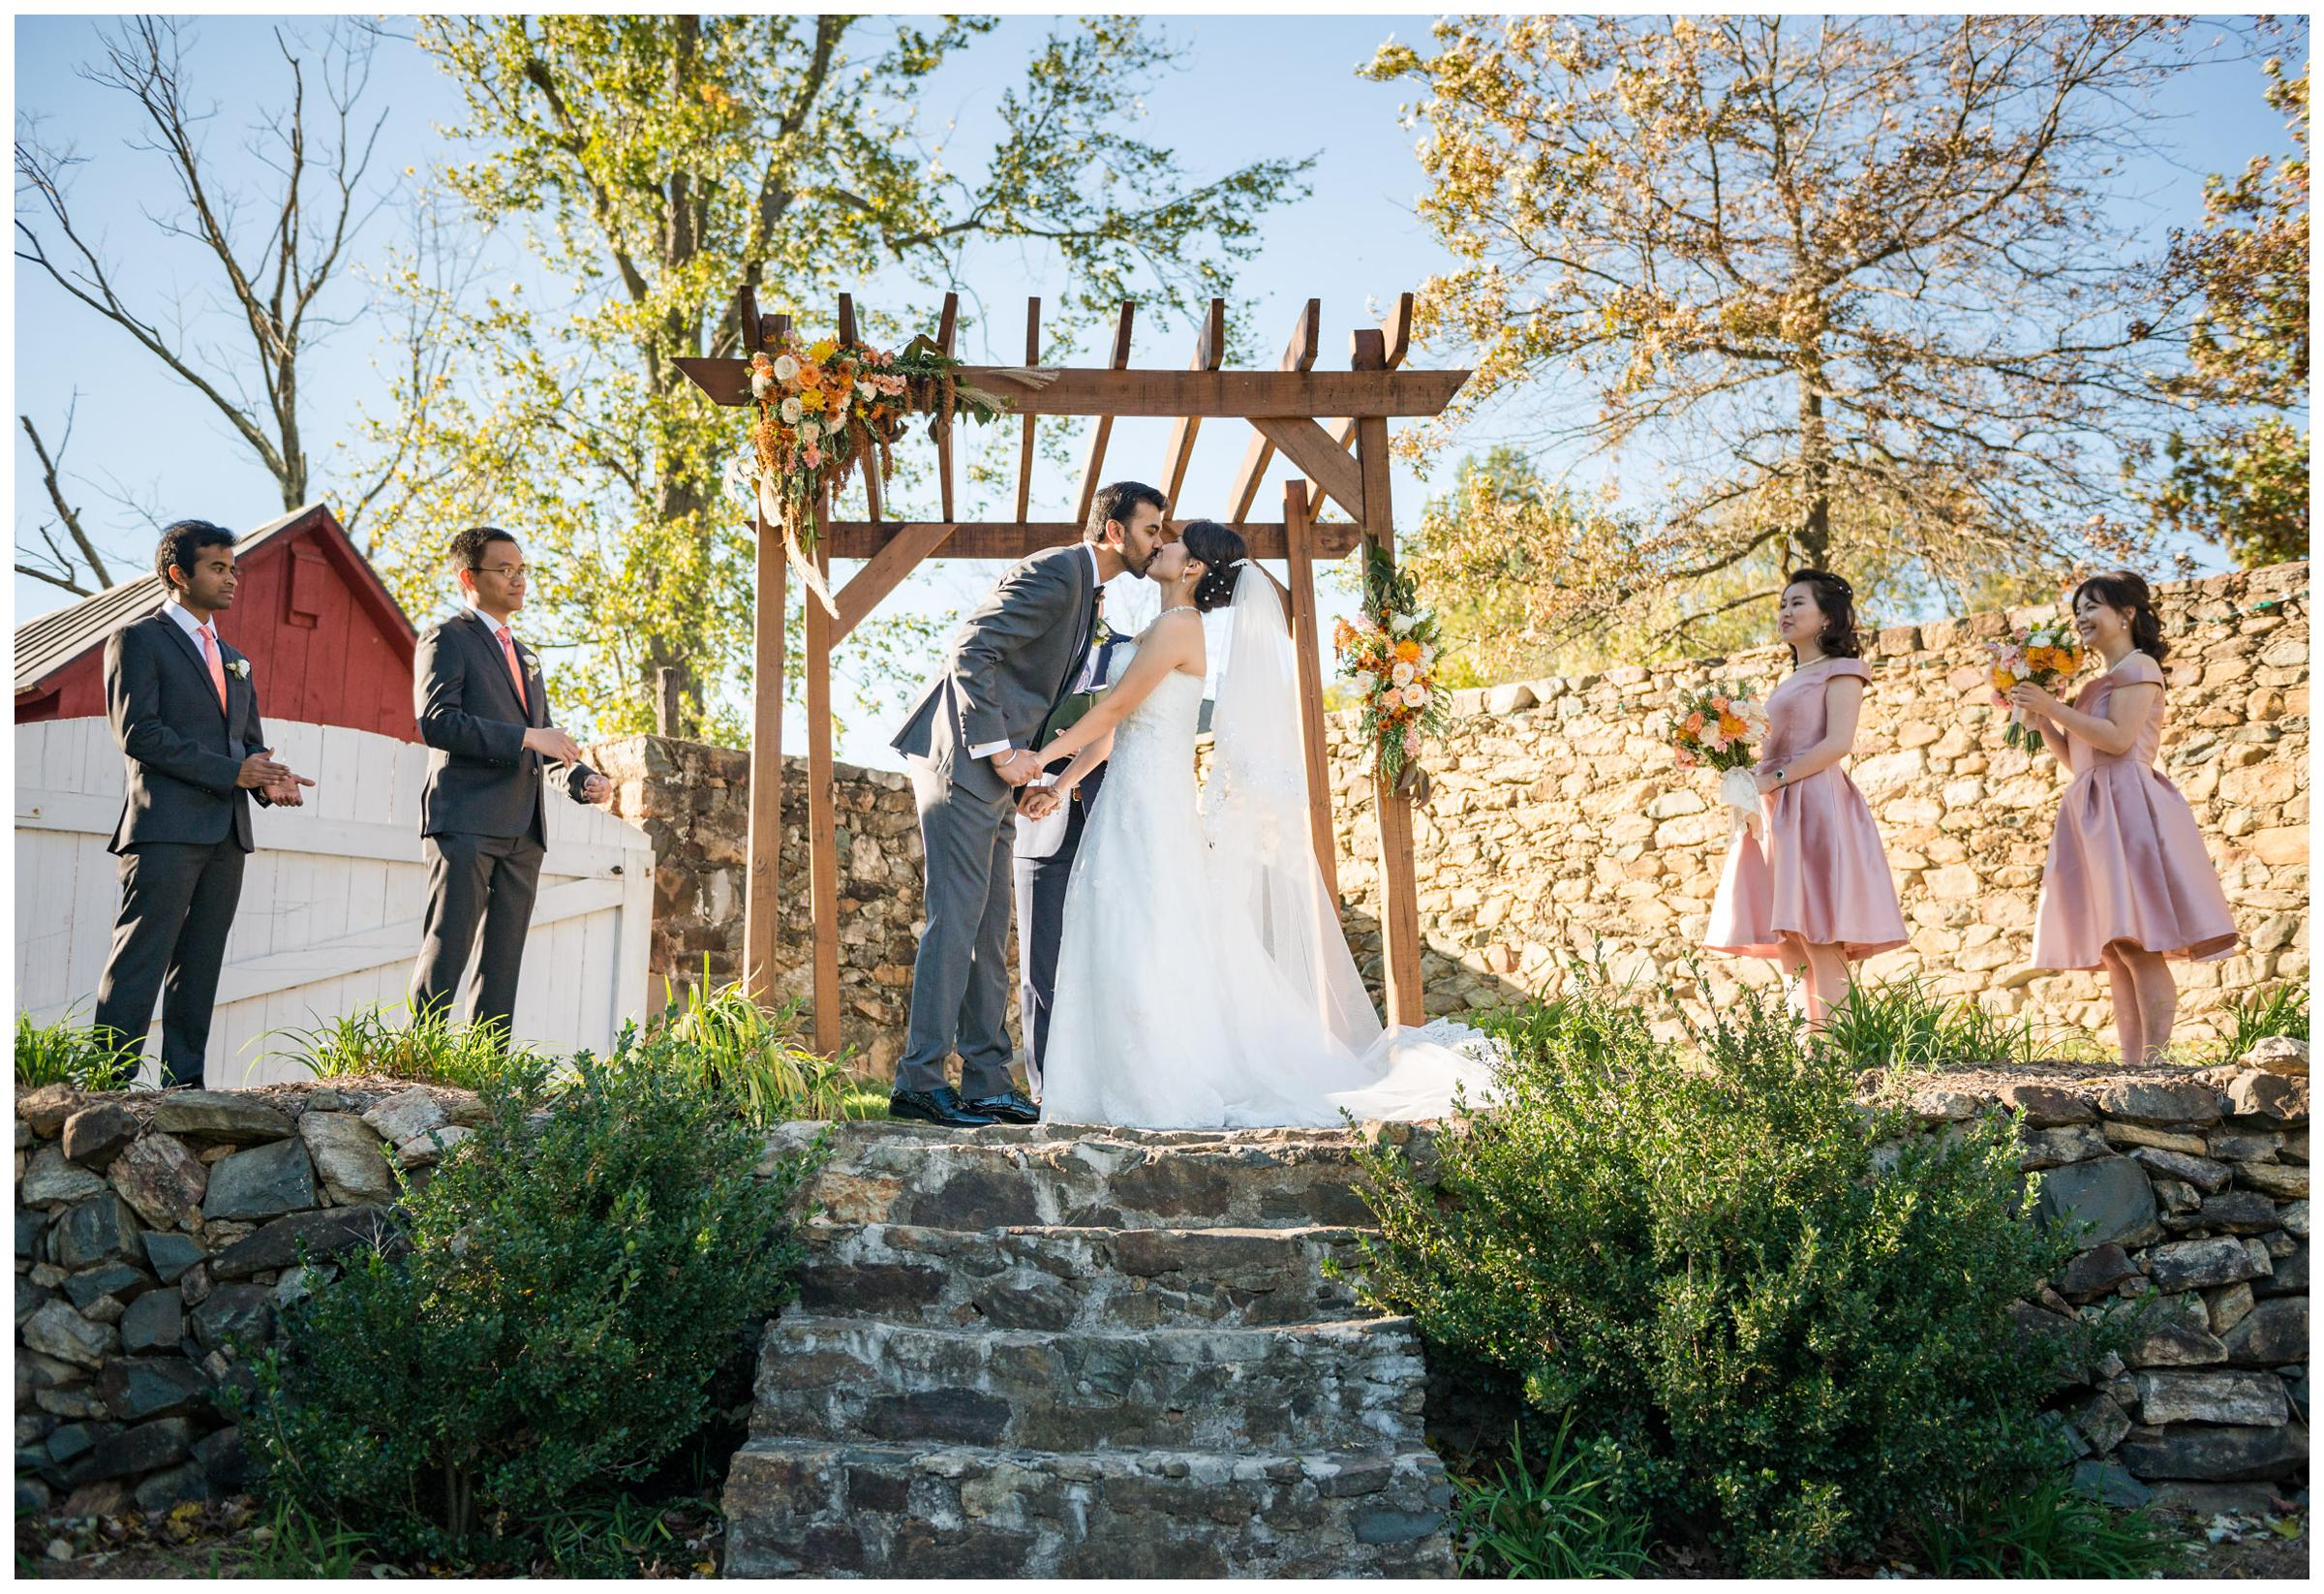 Bride and groom's first kiss during rustic wedding ceremony at Stoneleigh Golf Club in Round Hill, Virginia.